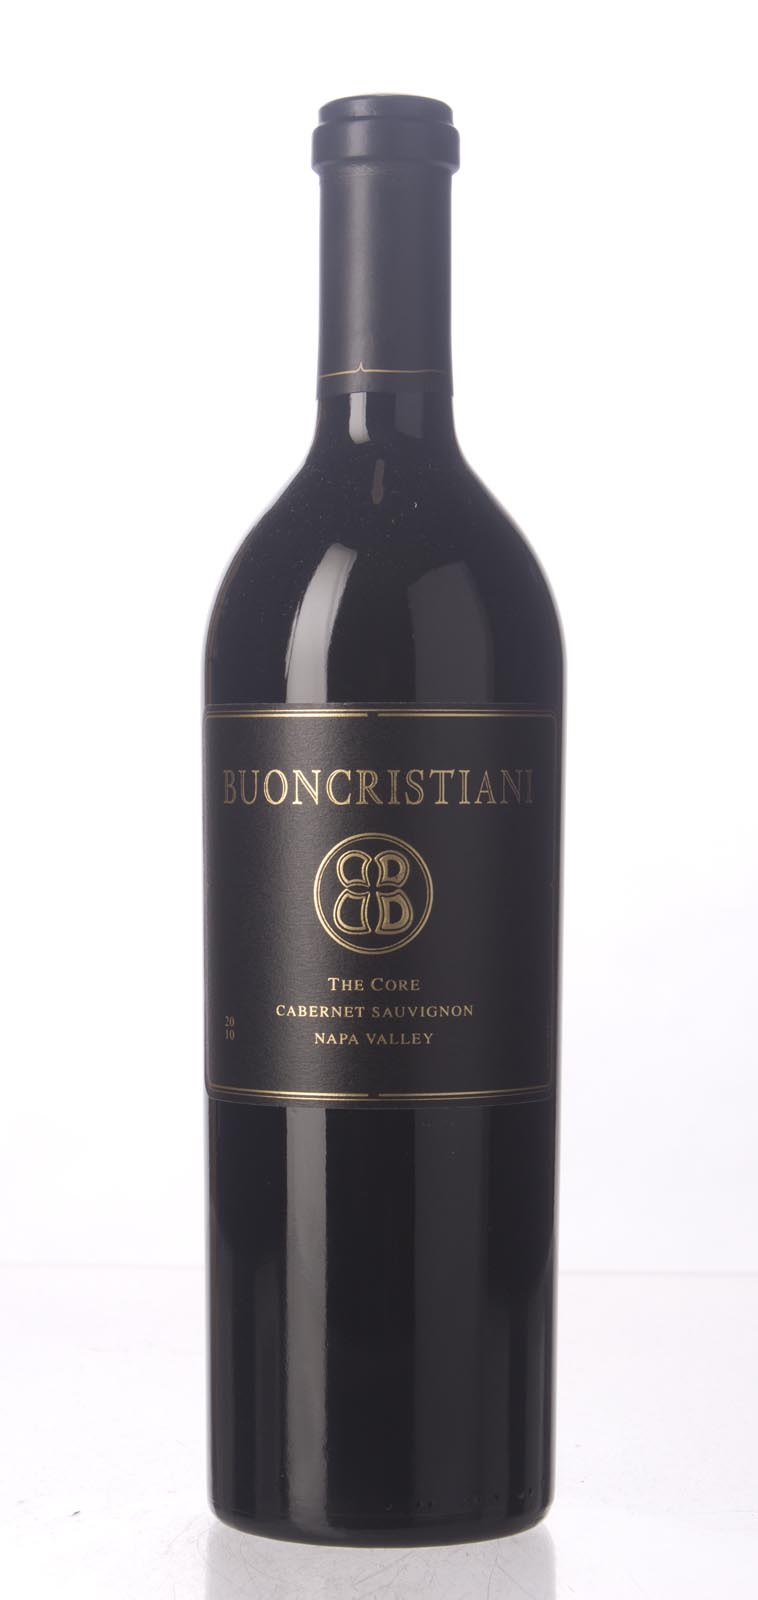 Buoncristiani Cabernet Sauvignon The Core 2010, 750mL (WA96) from The BPW - Merchants of rare and fine wines.